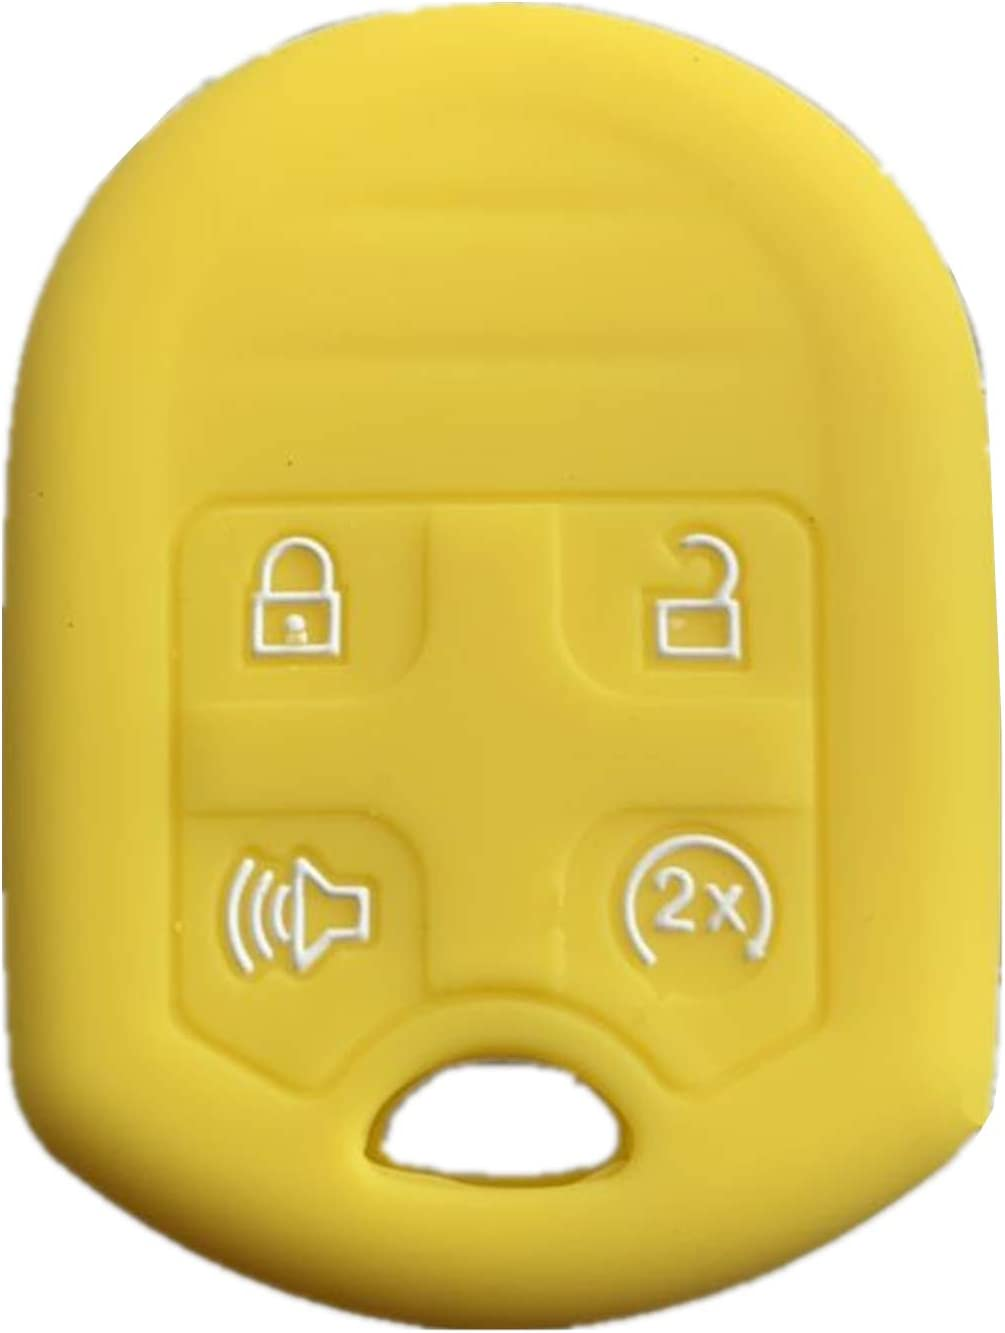 yellow Rpkey Silicone Keyless Entry Remote Control Key Fob Cover Case protector For Ford Expedition F150 F250-350 Lincoln Navigator 164-R8073 CWTWB1U793